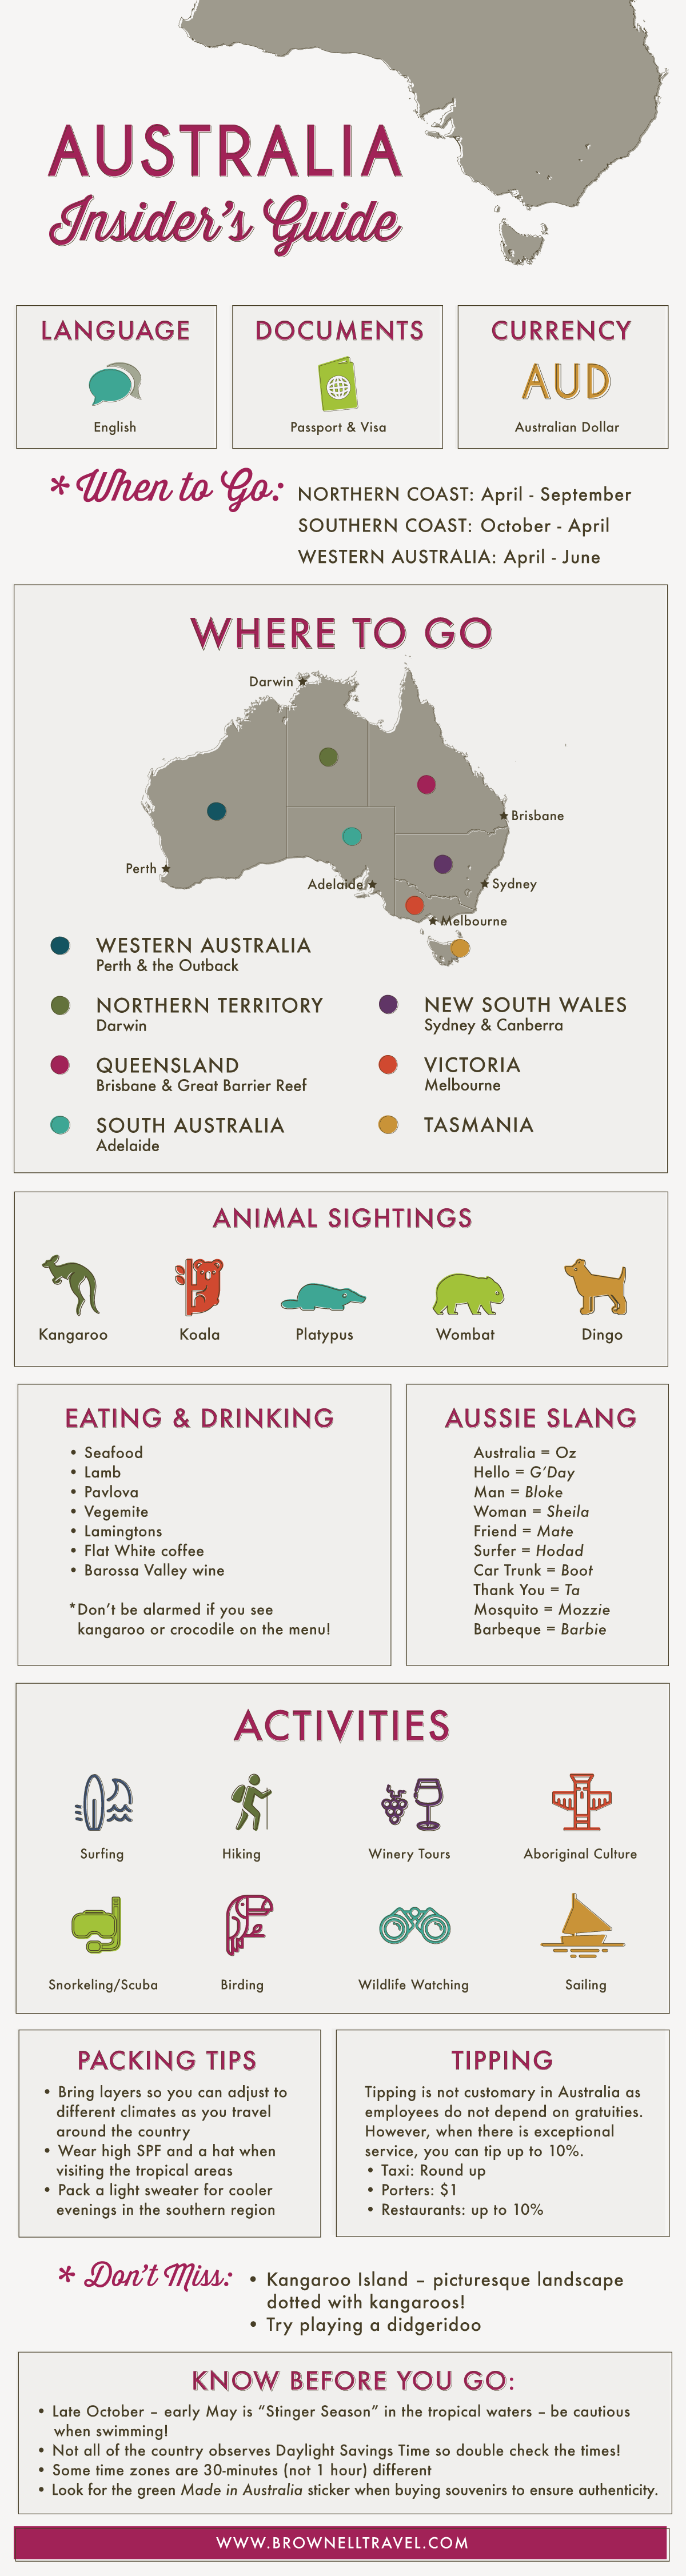 insiders-guide-to-australia-infographic